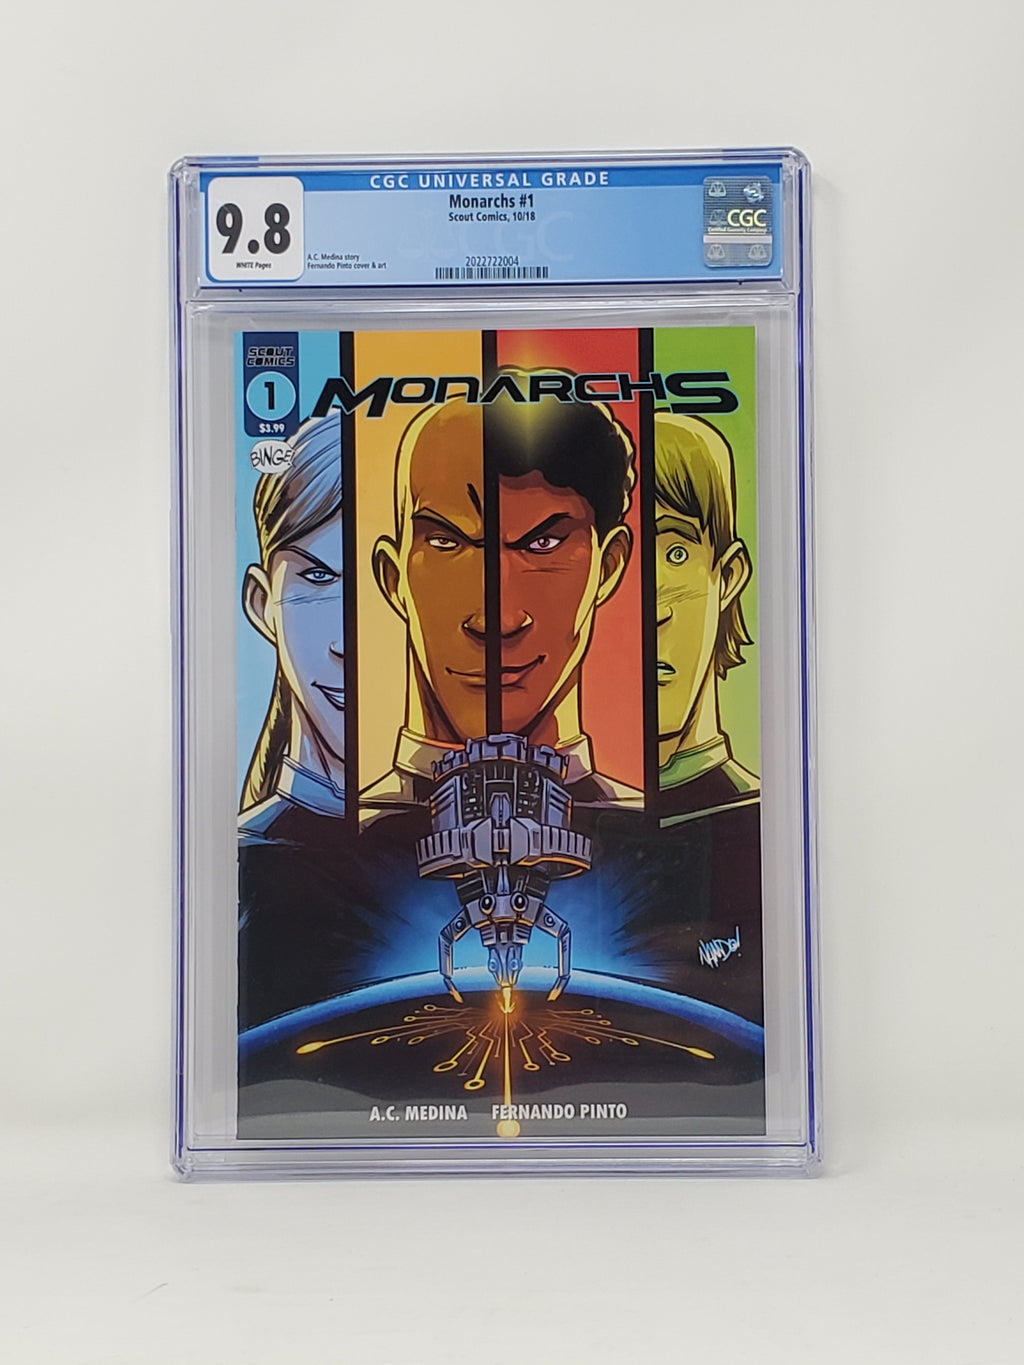 CGC Graded - Monarchs #1 - 9.8